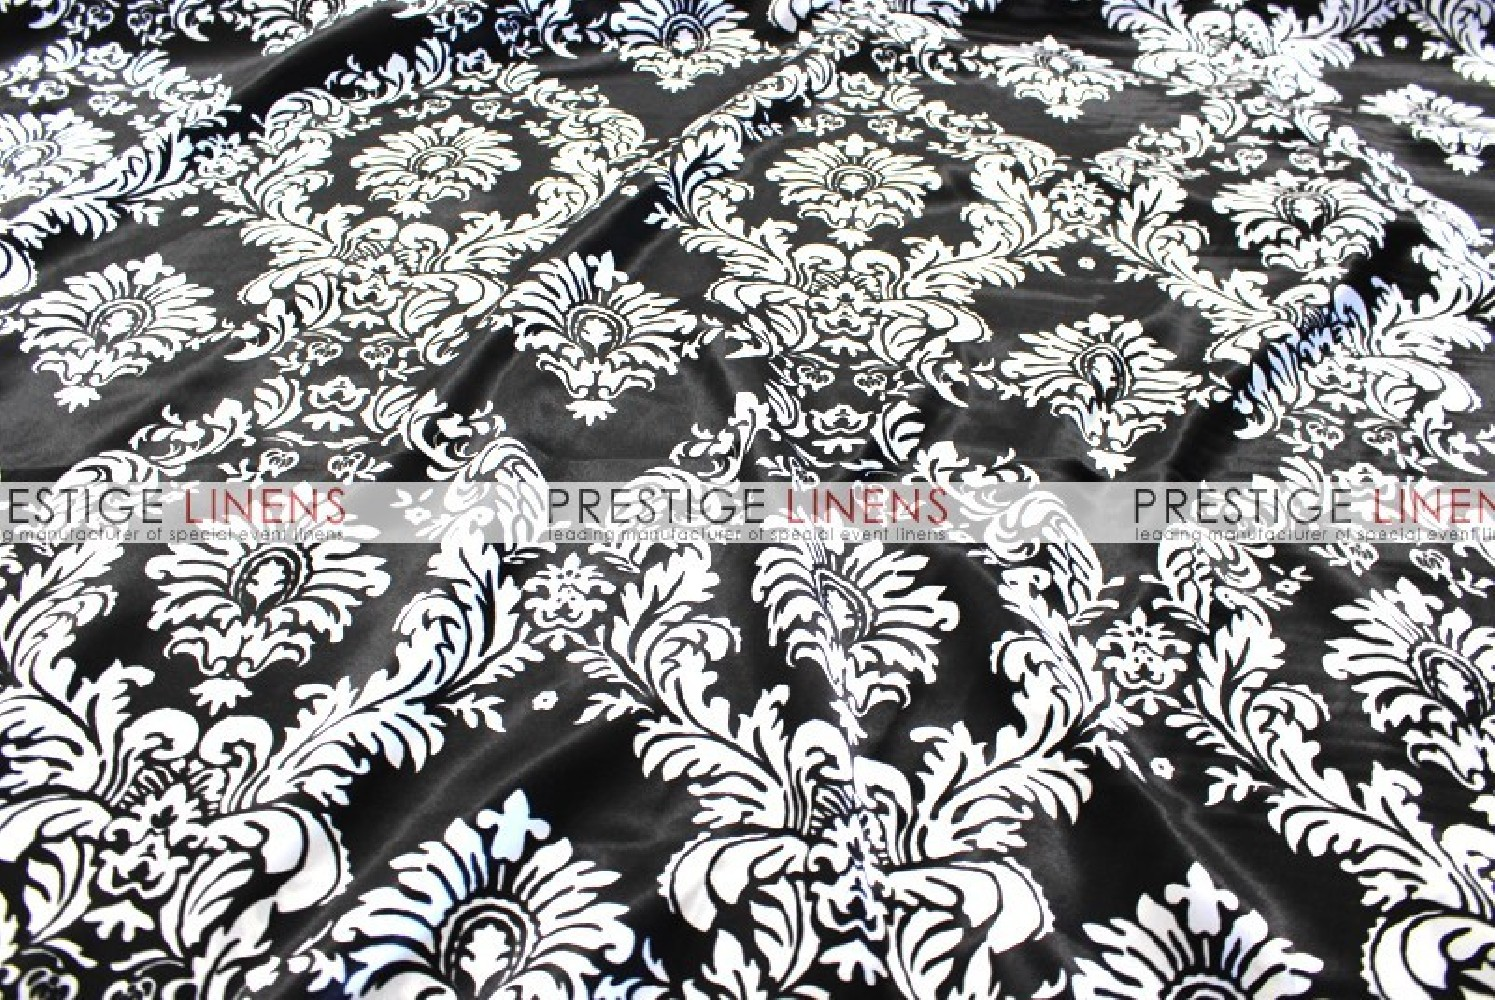 Damask Print Charmeuse Table Runner   Black/White